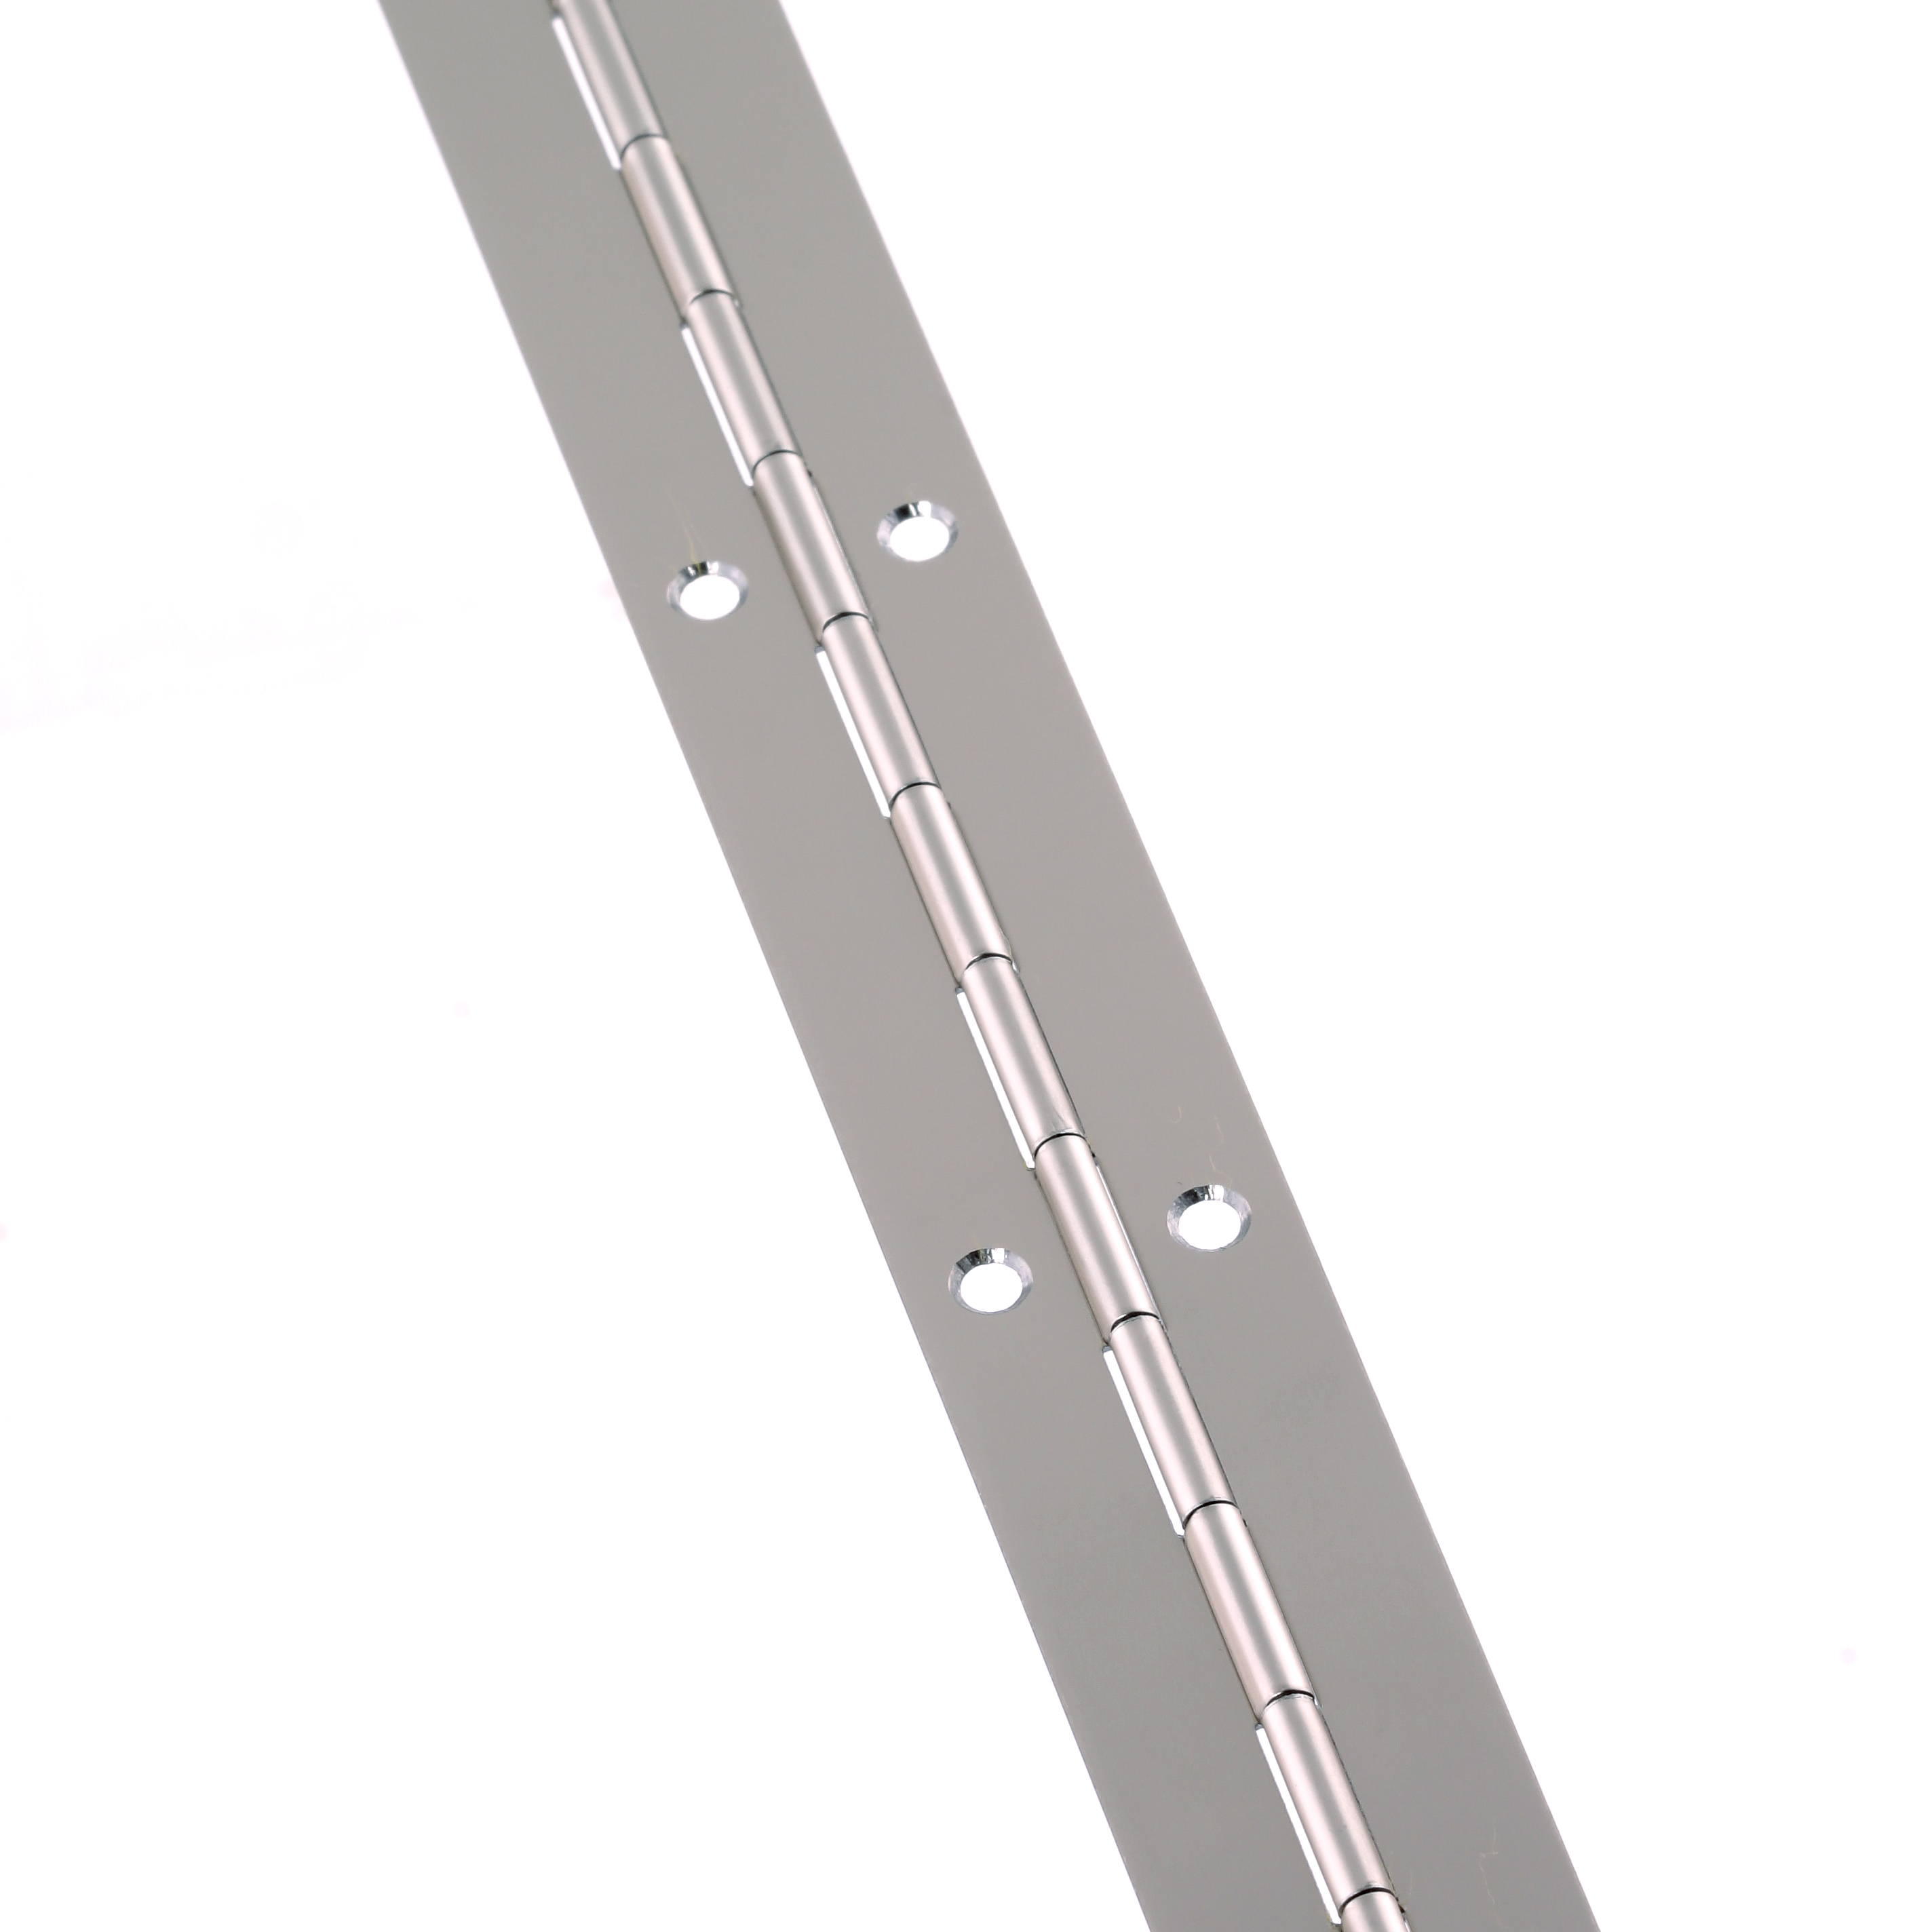 Steel Piano Hinge - 1800 x 25 x 0.7mm - Nickel Plated)